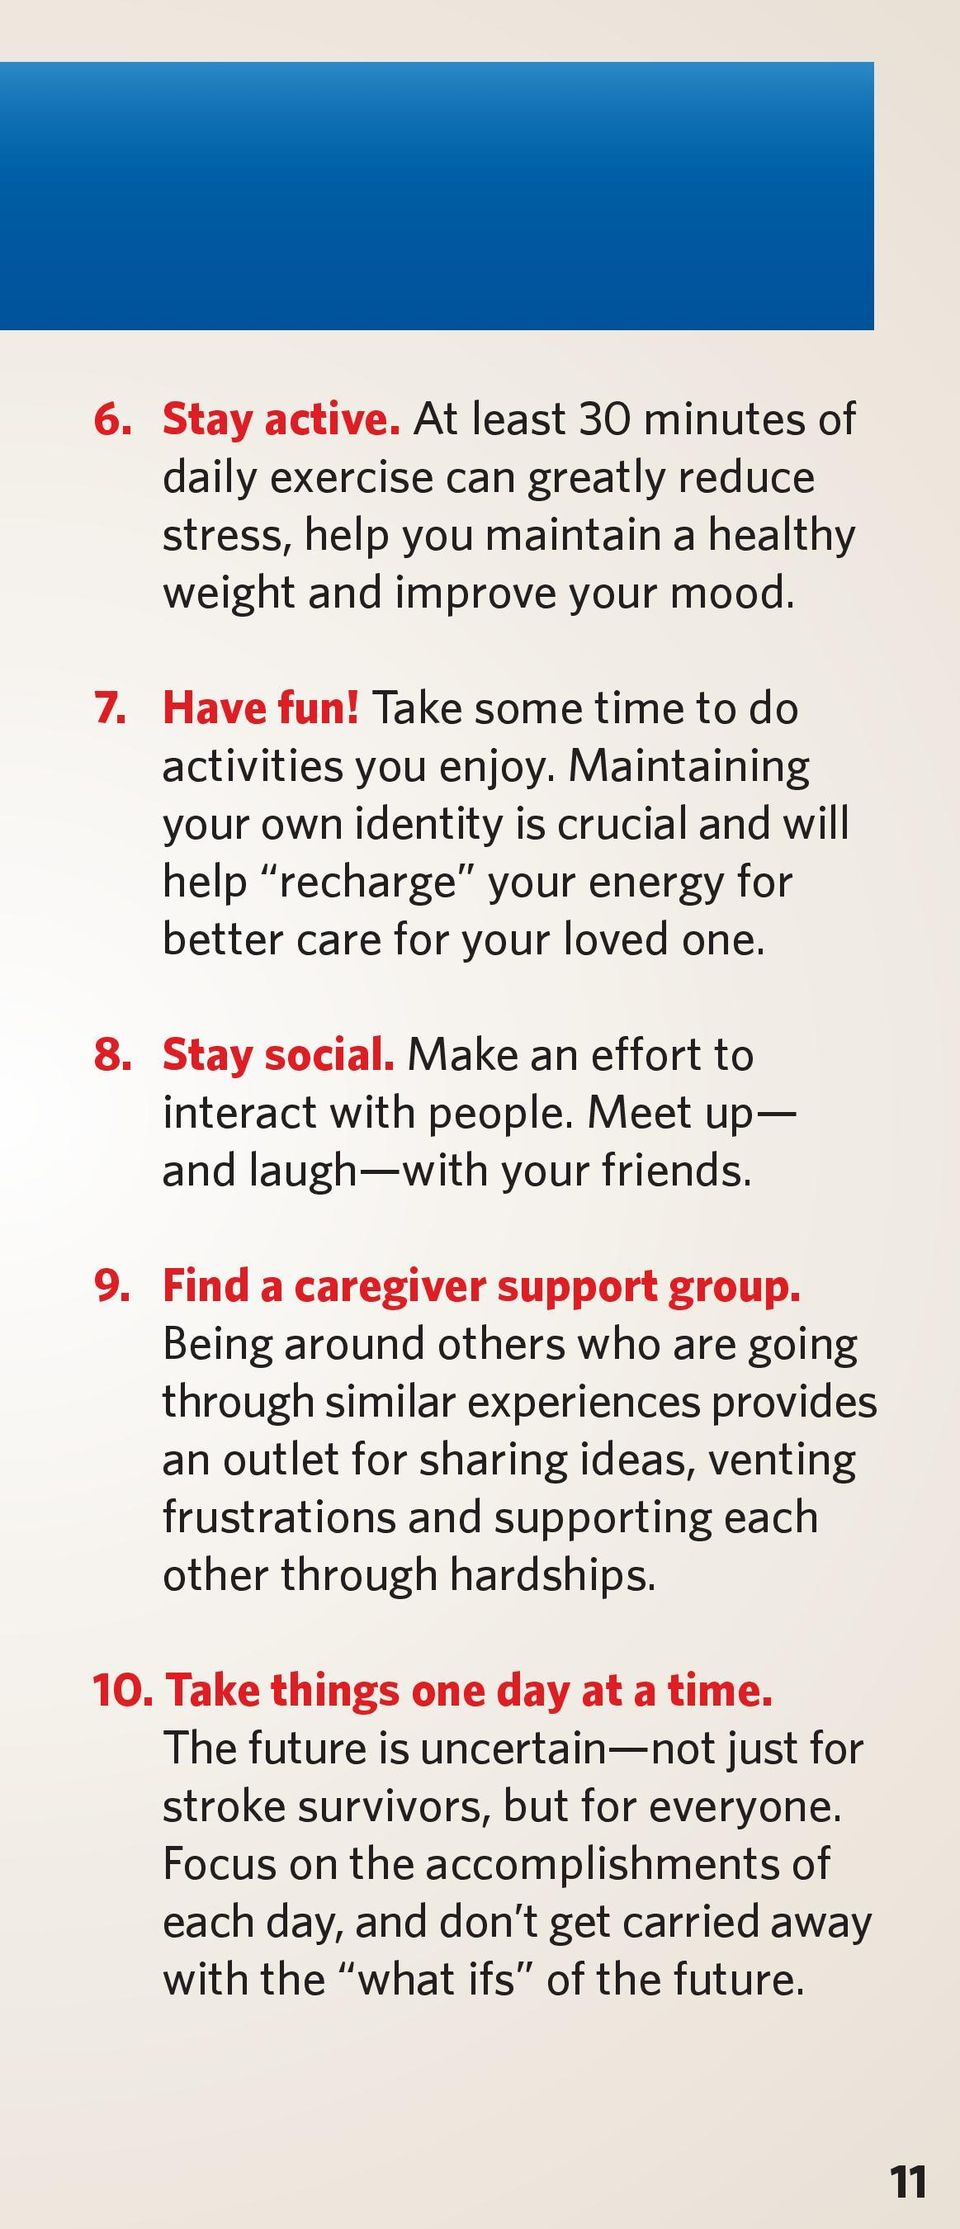 Meet up and laugh with your friends. 9. Find a caregiver support group.